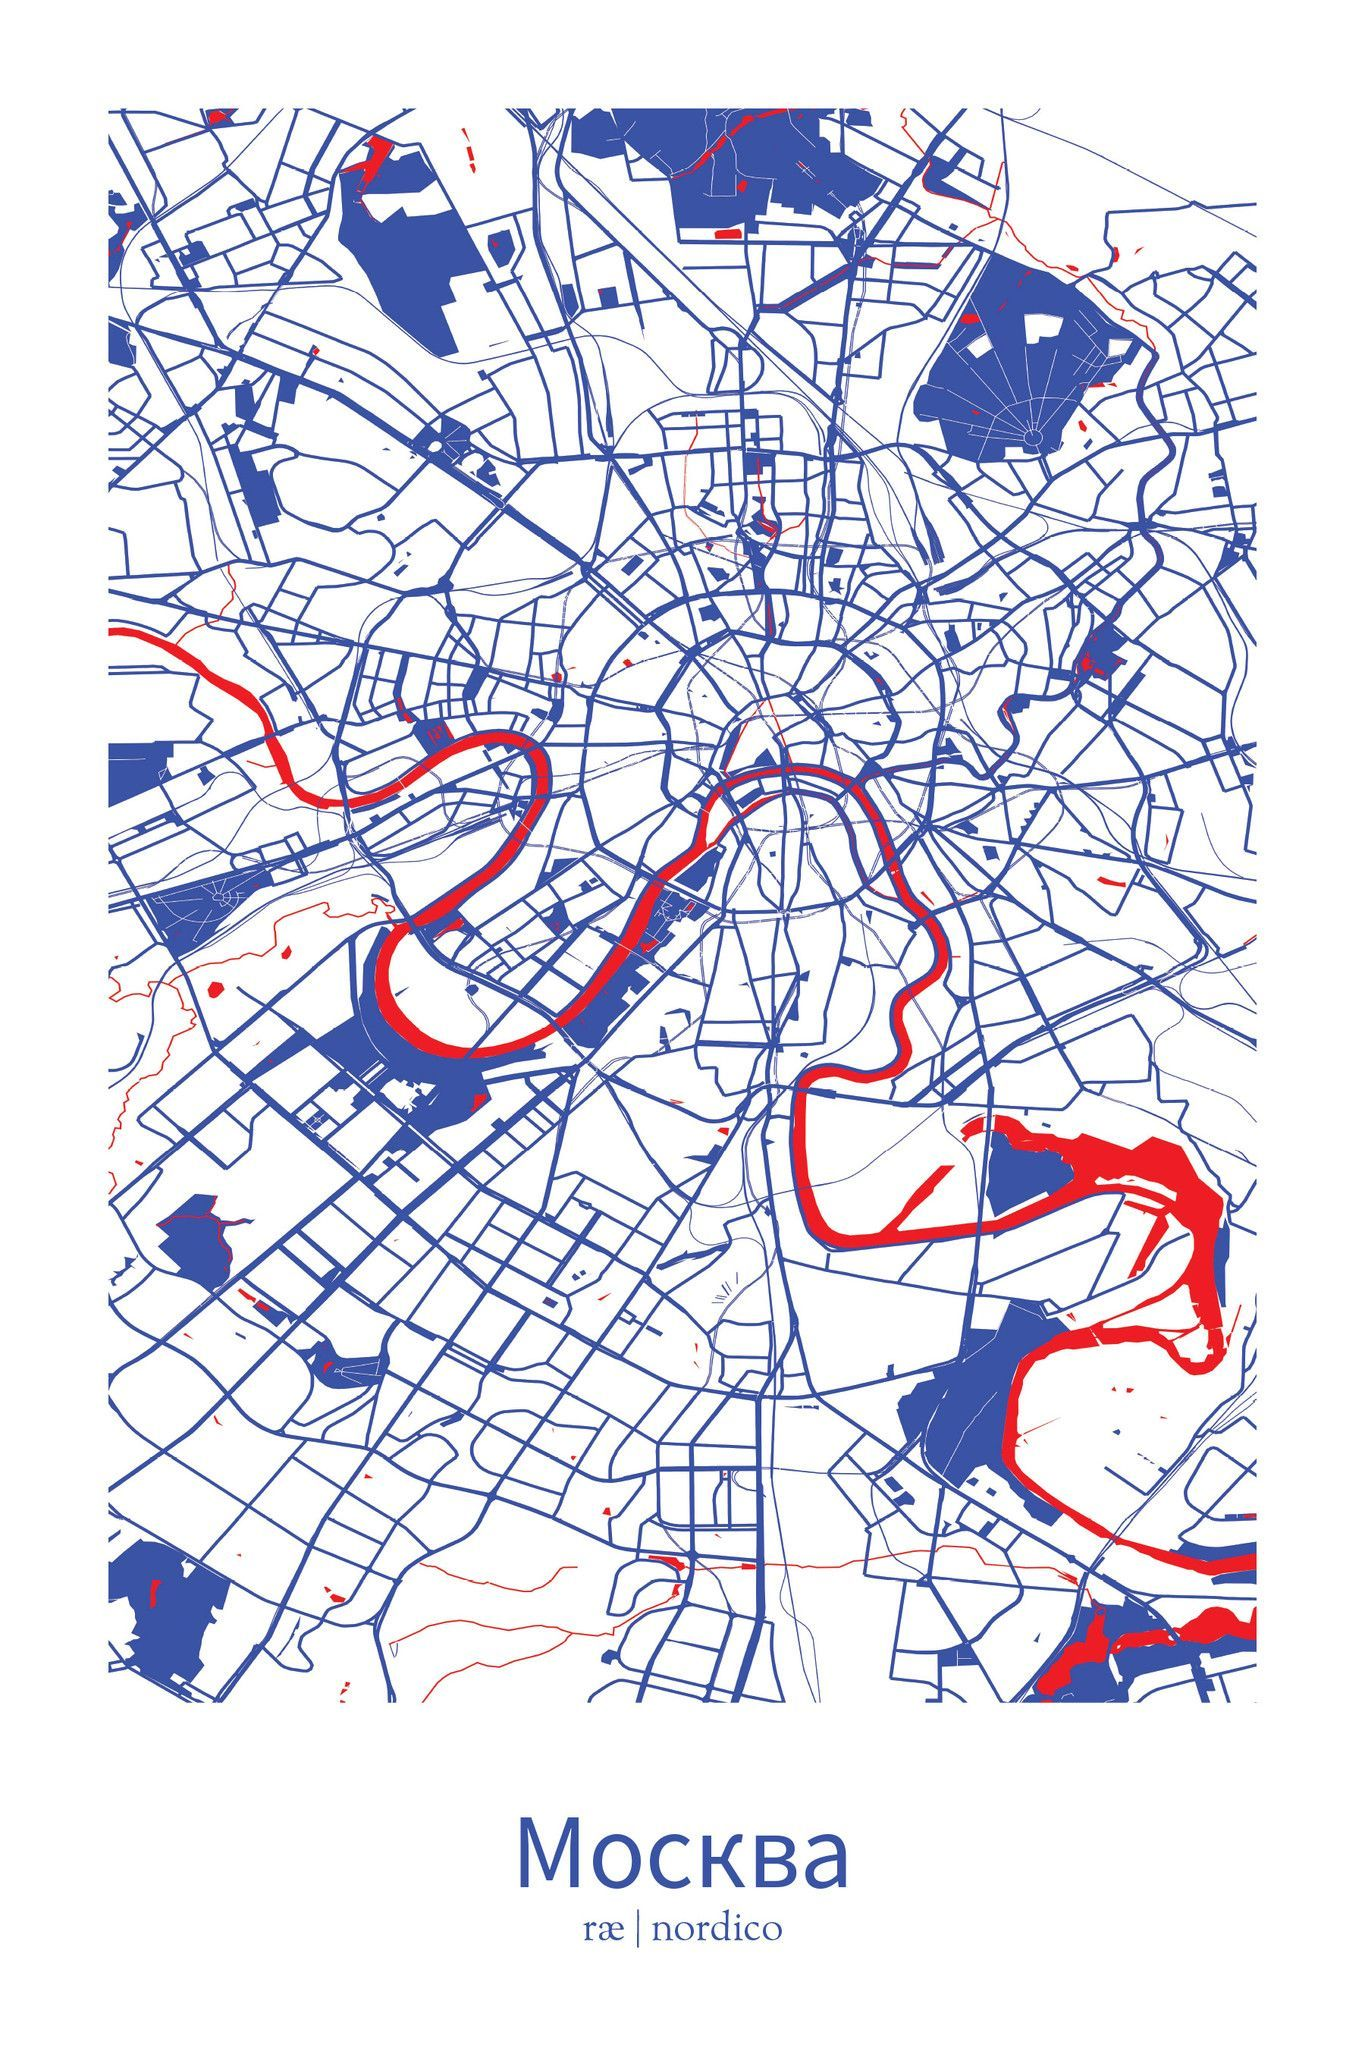 Moscow, Russia Map Print   City Maps   Pinterest   Moscow russia ...